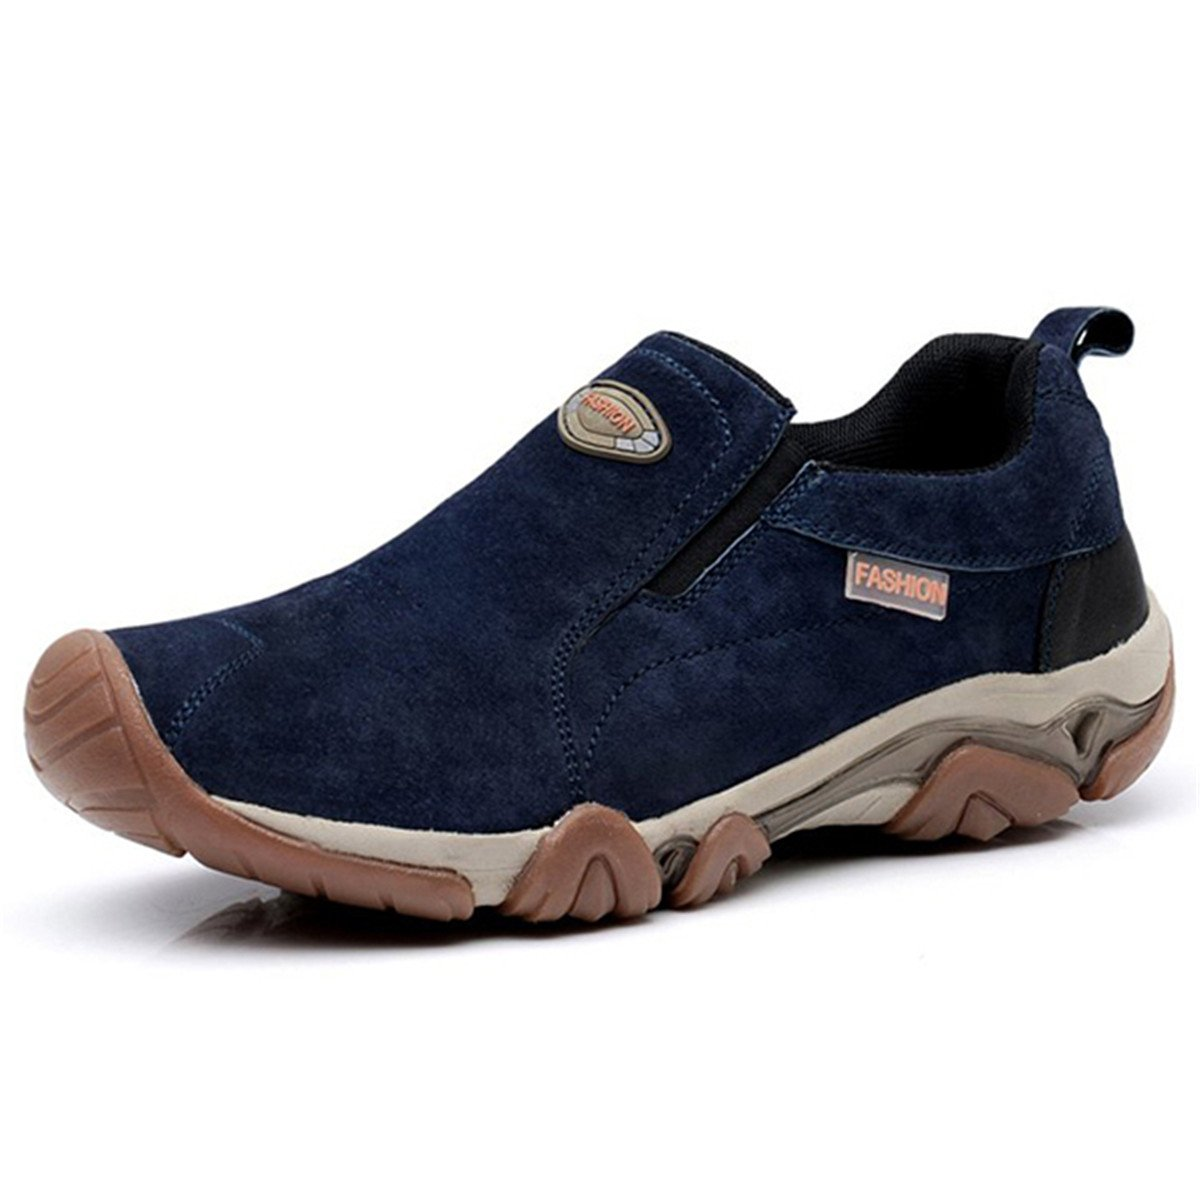 Gracosy Men's Slip On Sneaker Outdoor Hiking Casual Sneakers Cow Split Leather Shock Absorption Non-Slip Shoes Blue 7.5 D(M) US